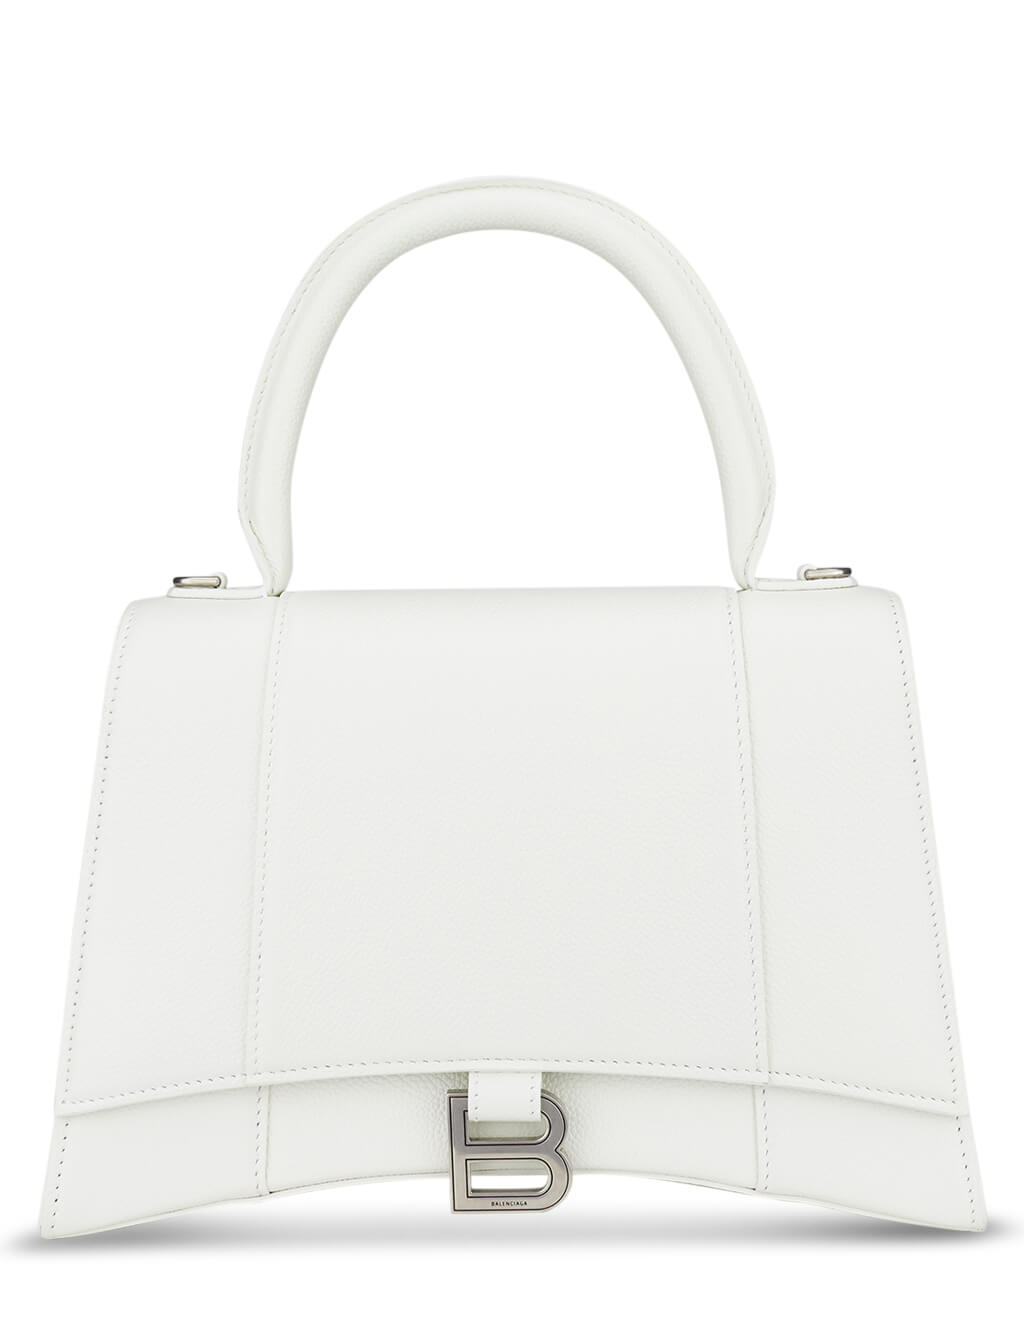 Women's White Balenciaga Hourglass Bag 6196681IZHY9000